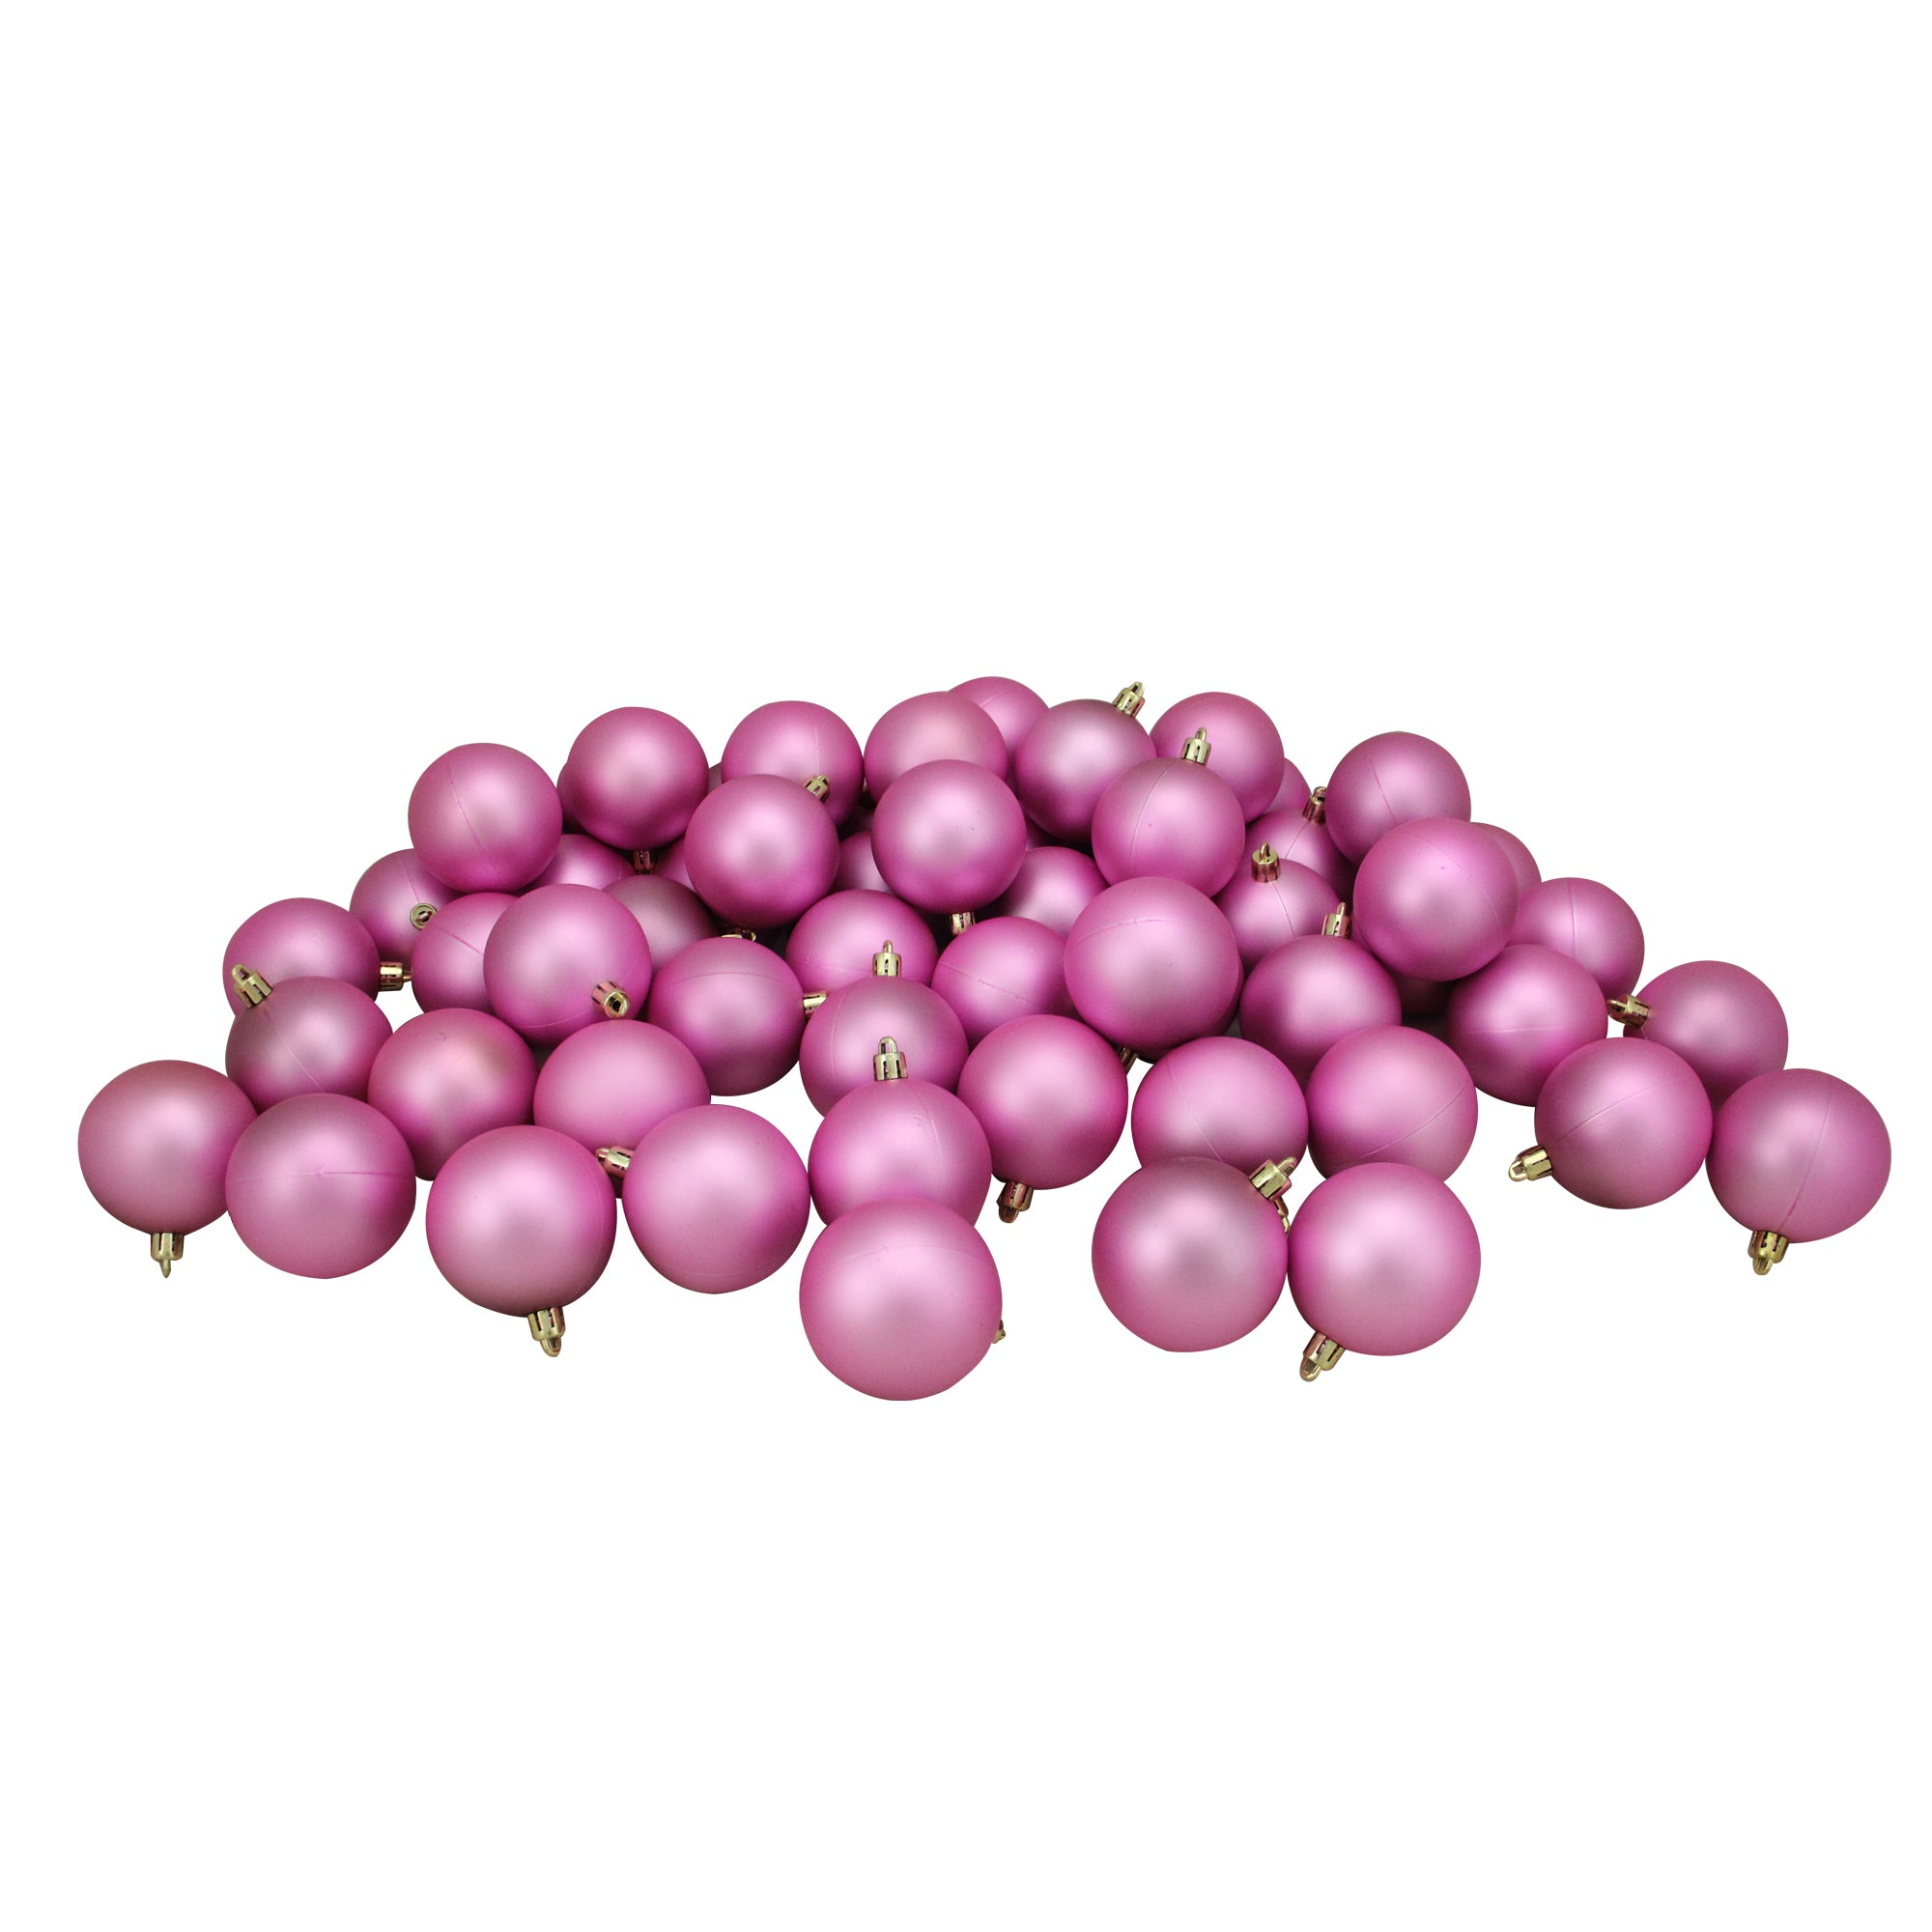 Northcape 60 Count Shatterproof Christmas Ball Ornaments Pink